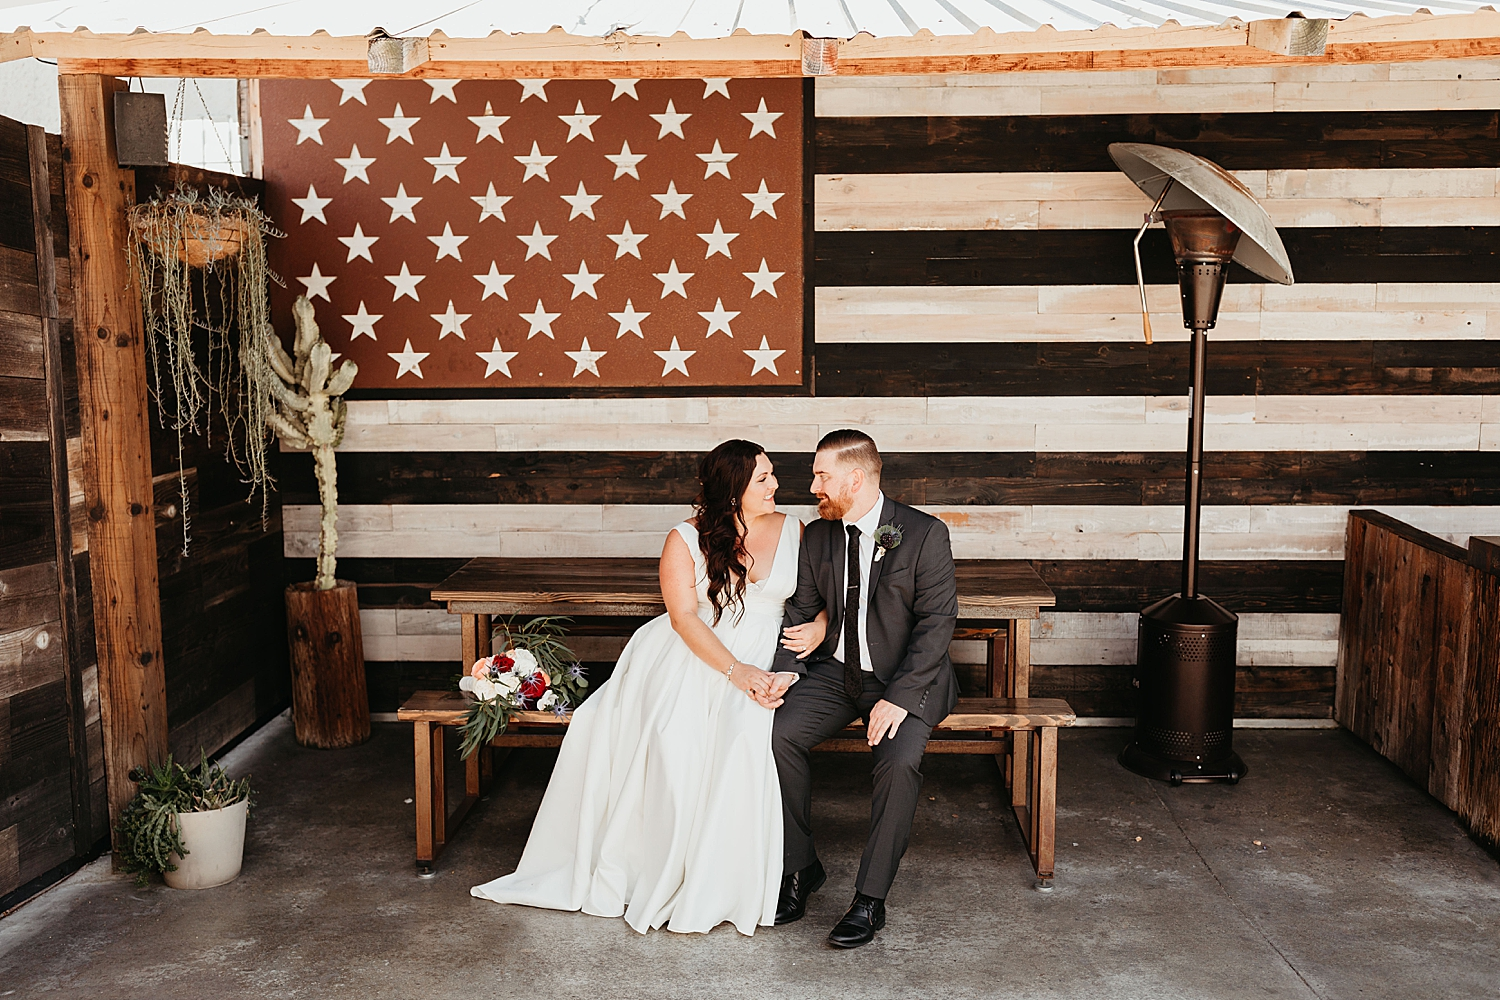 The-Wood-Shed-Booze-Brothers-Wedding-64.jpg